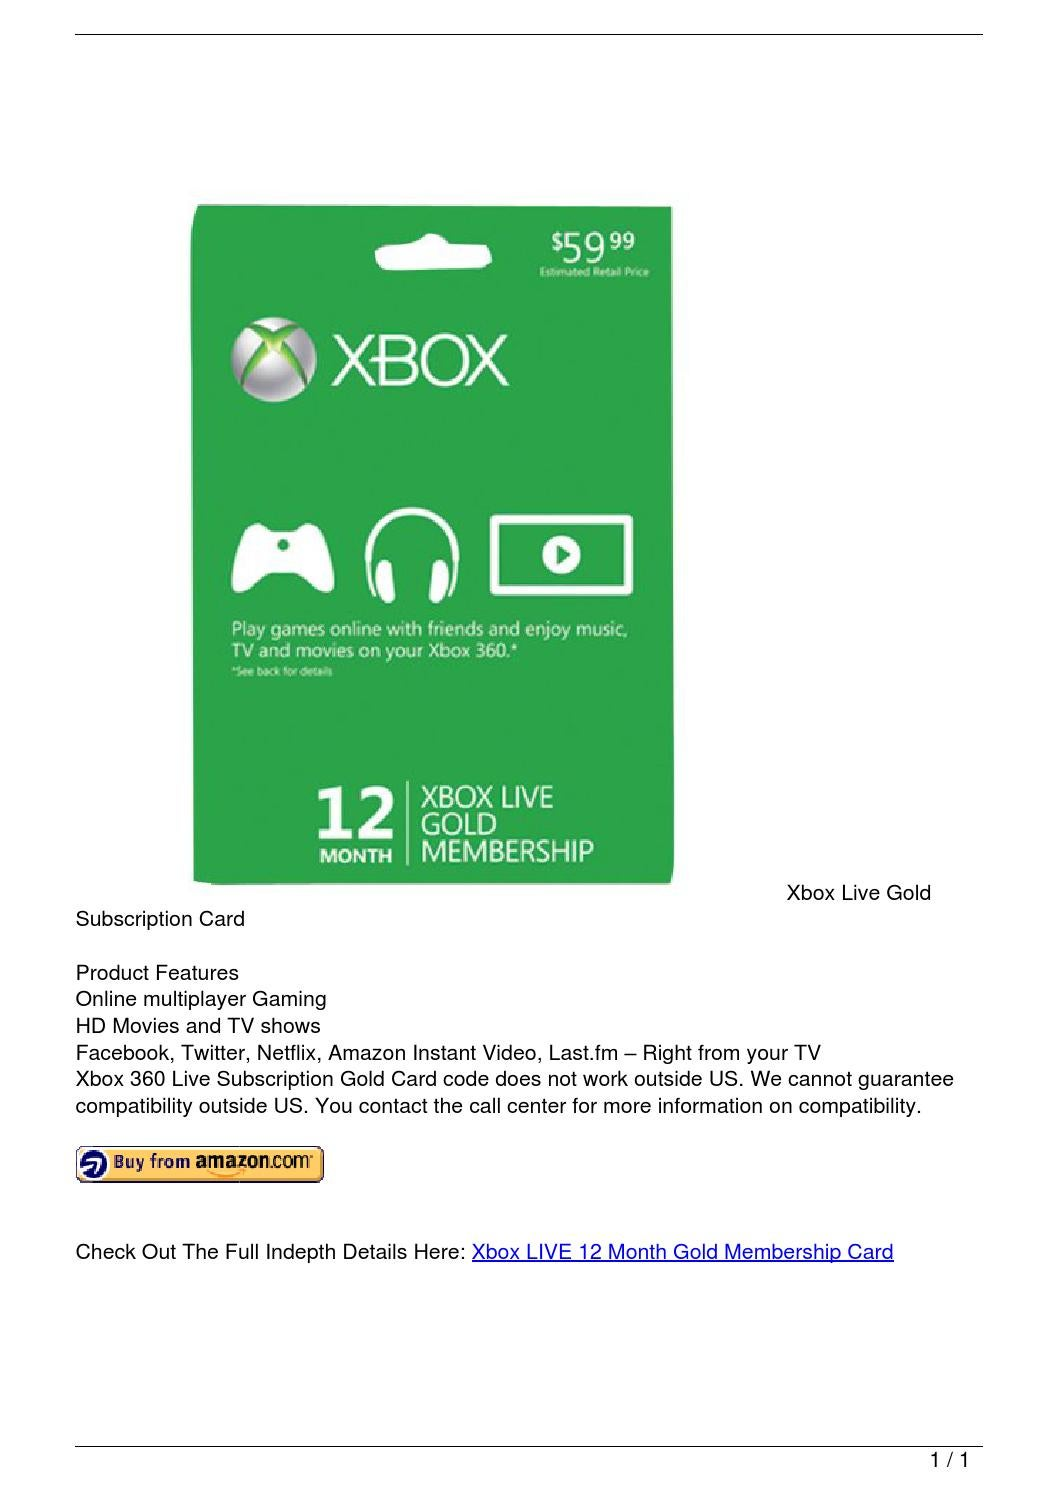 Xbox LIVE 12 Month Gold Membership Card by alarick18 - issuu